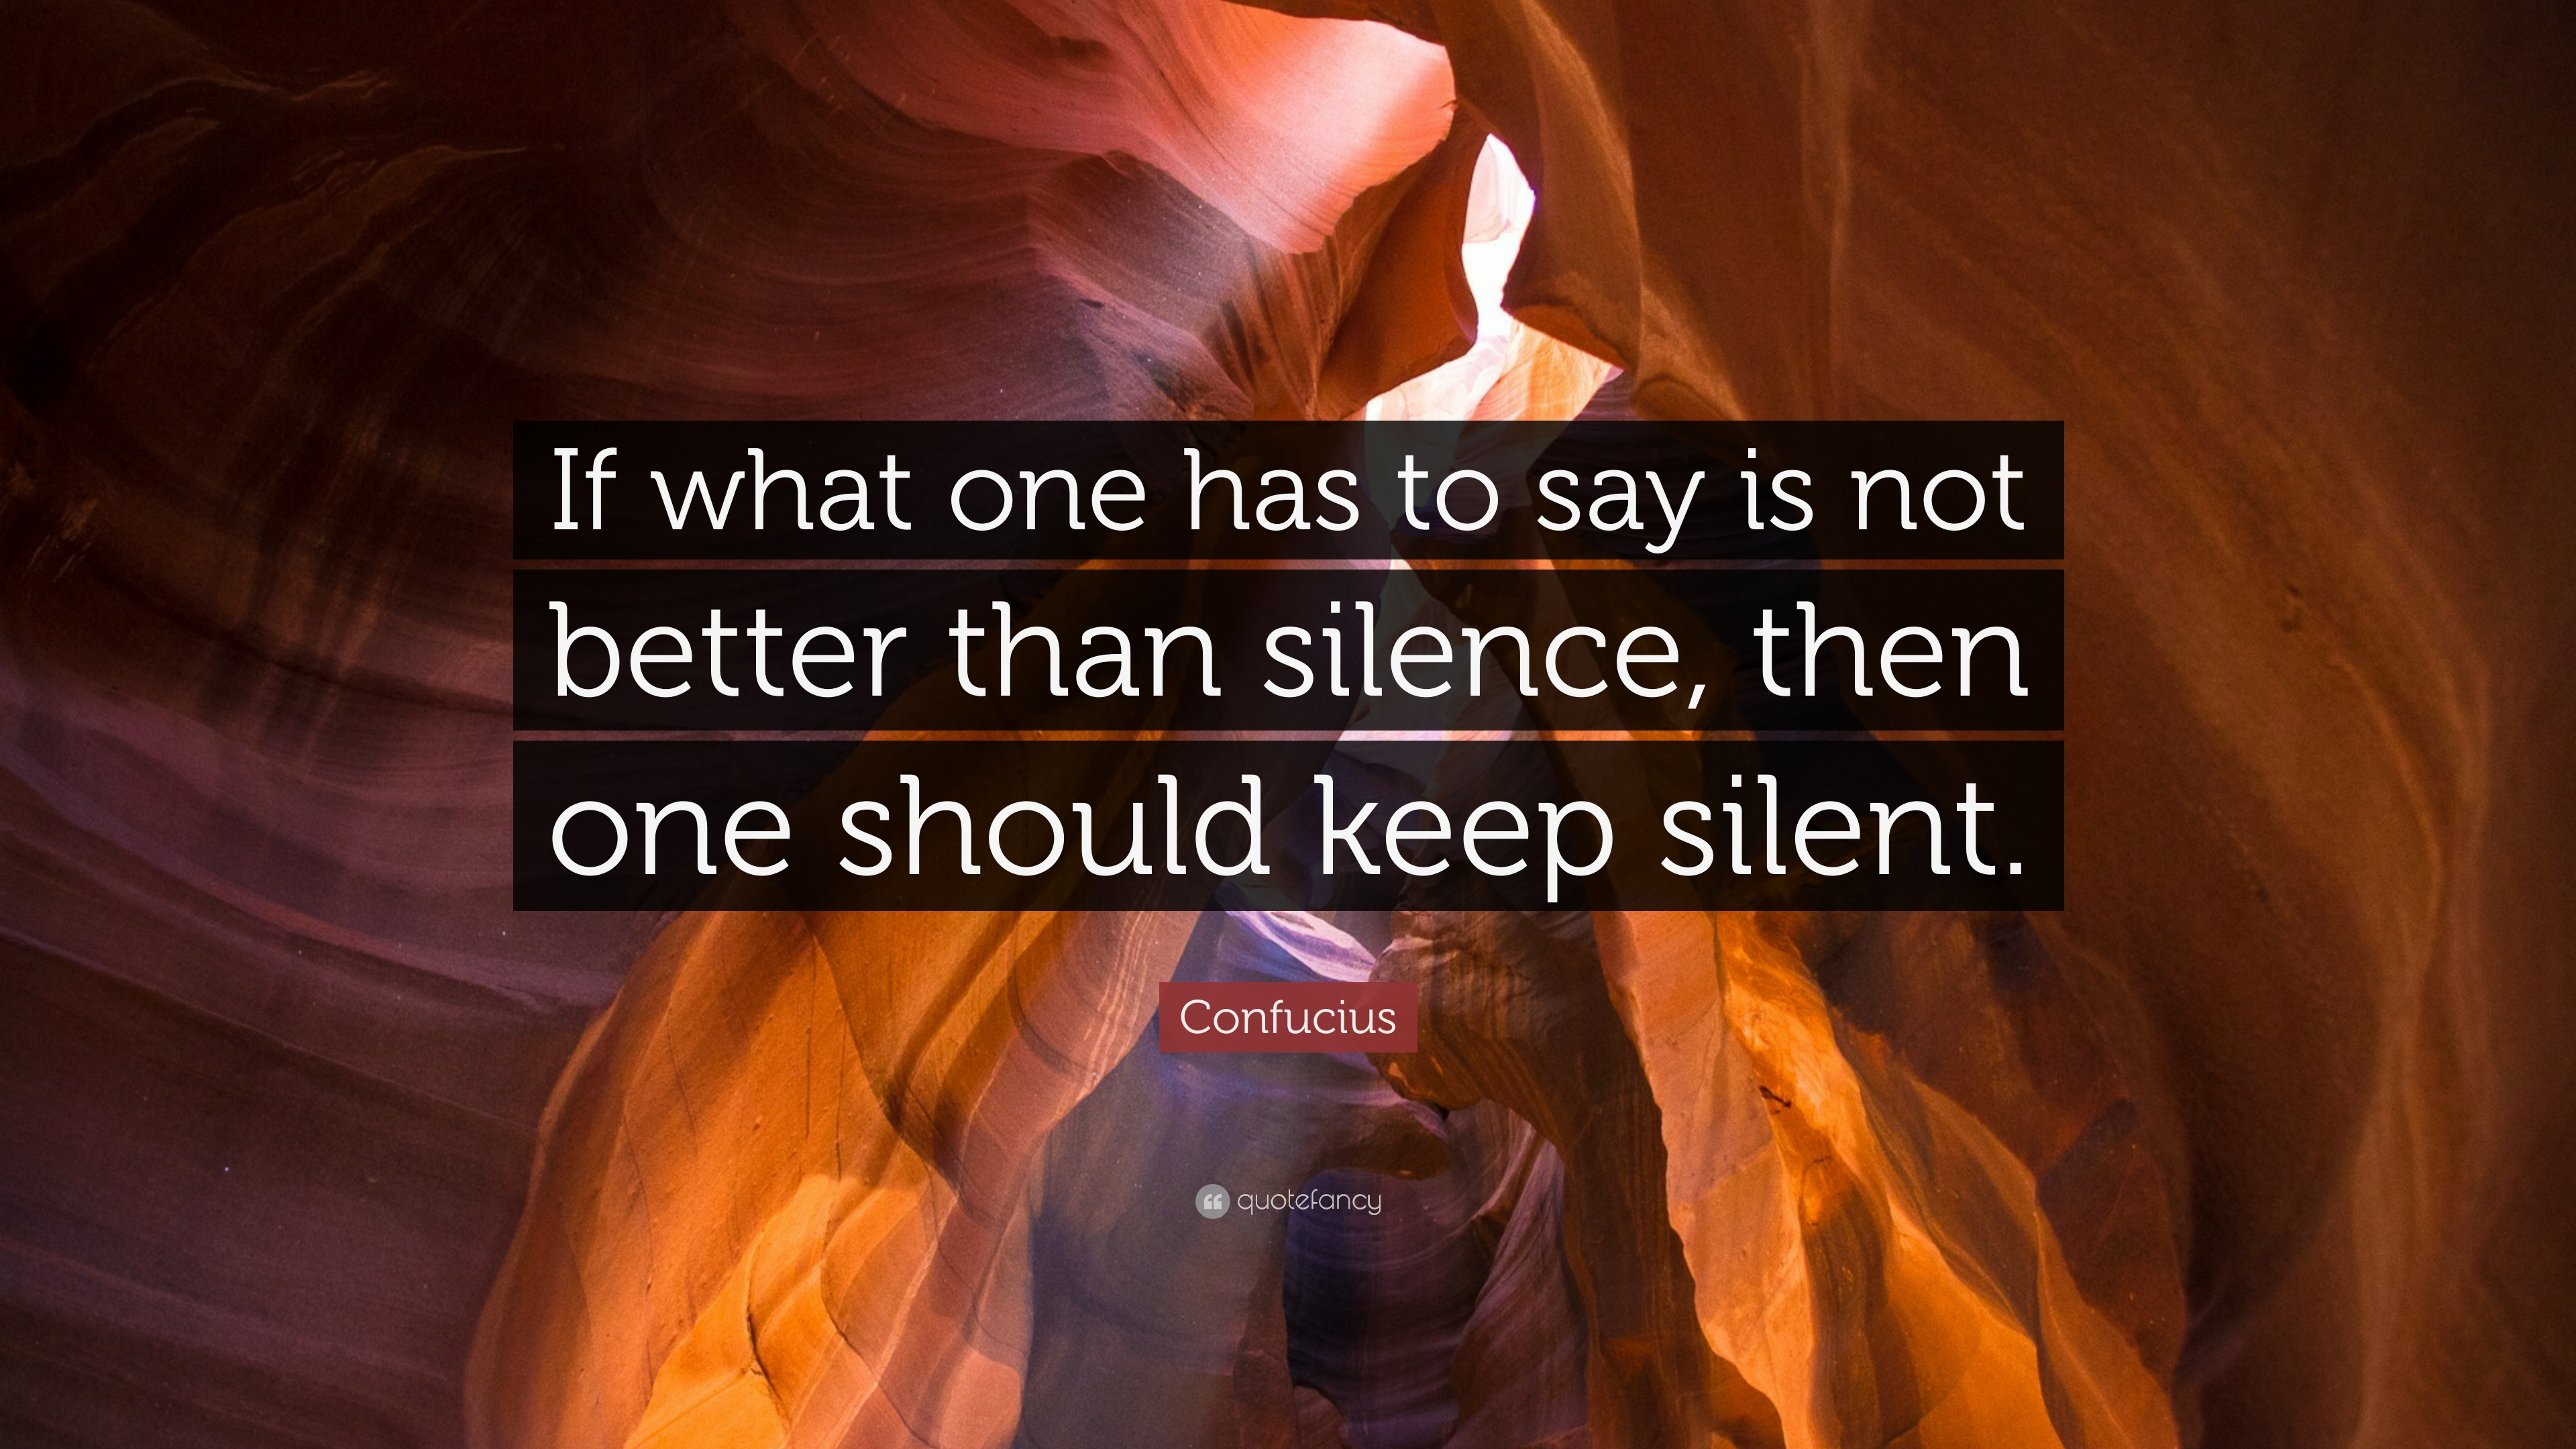 Be Silent or Say Something Better Than Silence